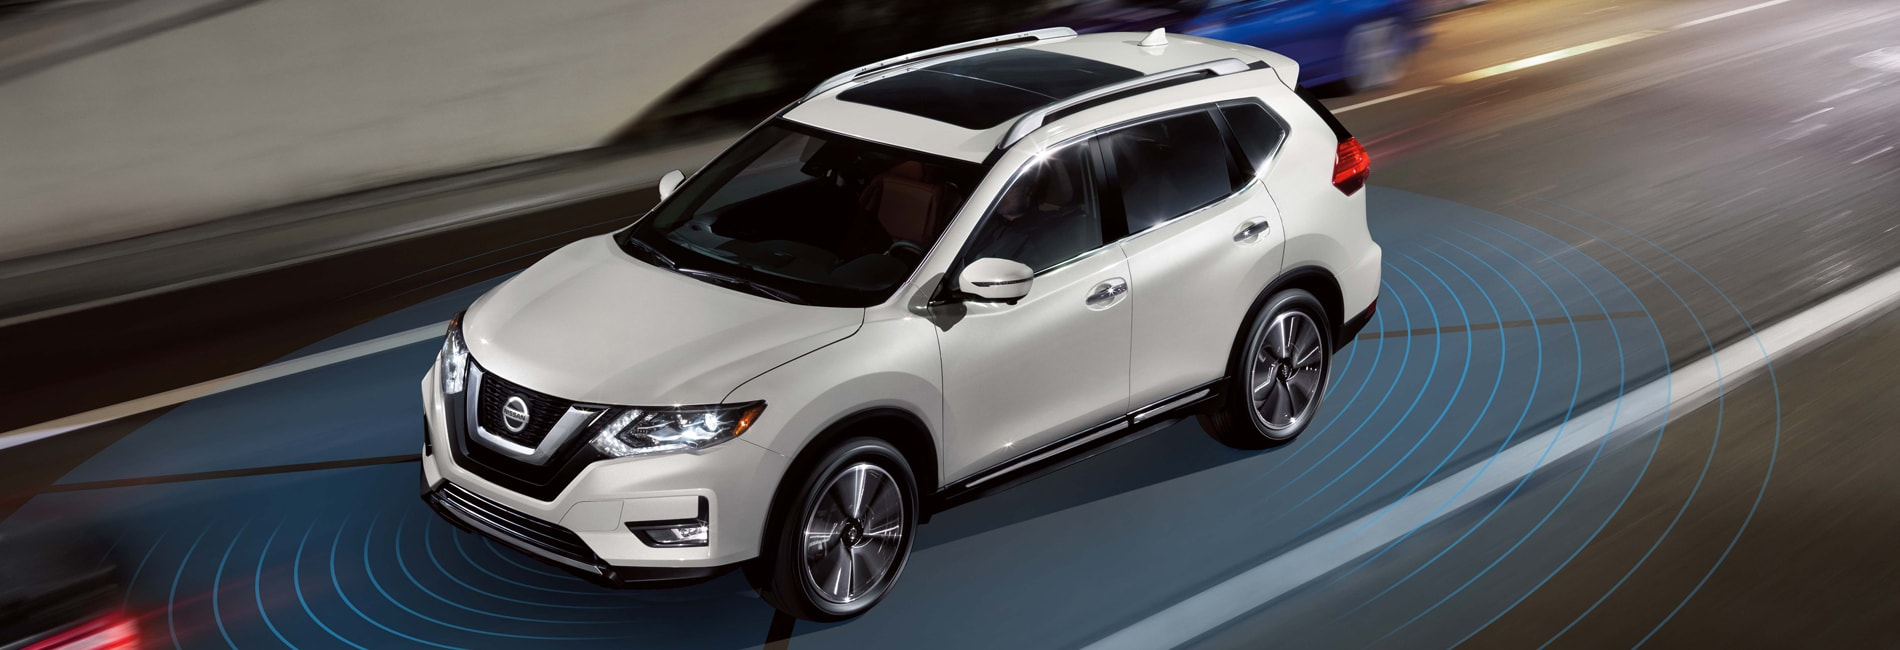 Nissan Rogue Exterior Vehicle Features